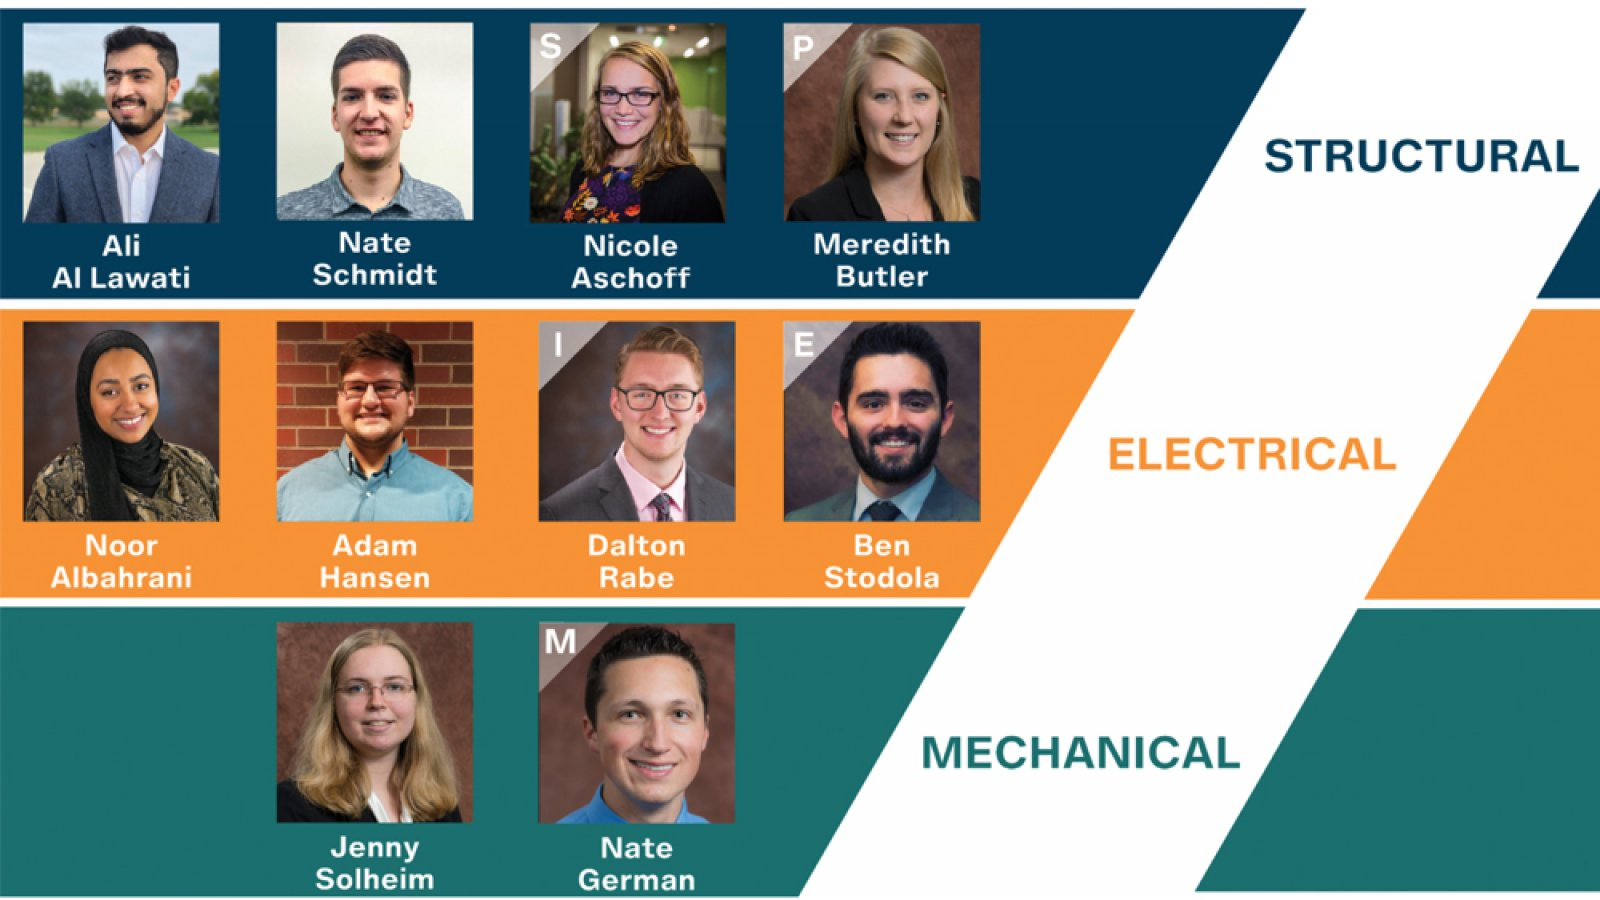 A team of Nebraska architectural engineering students earned the national championship at the AEI International Student Design Competition on April 22.